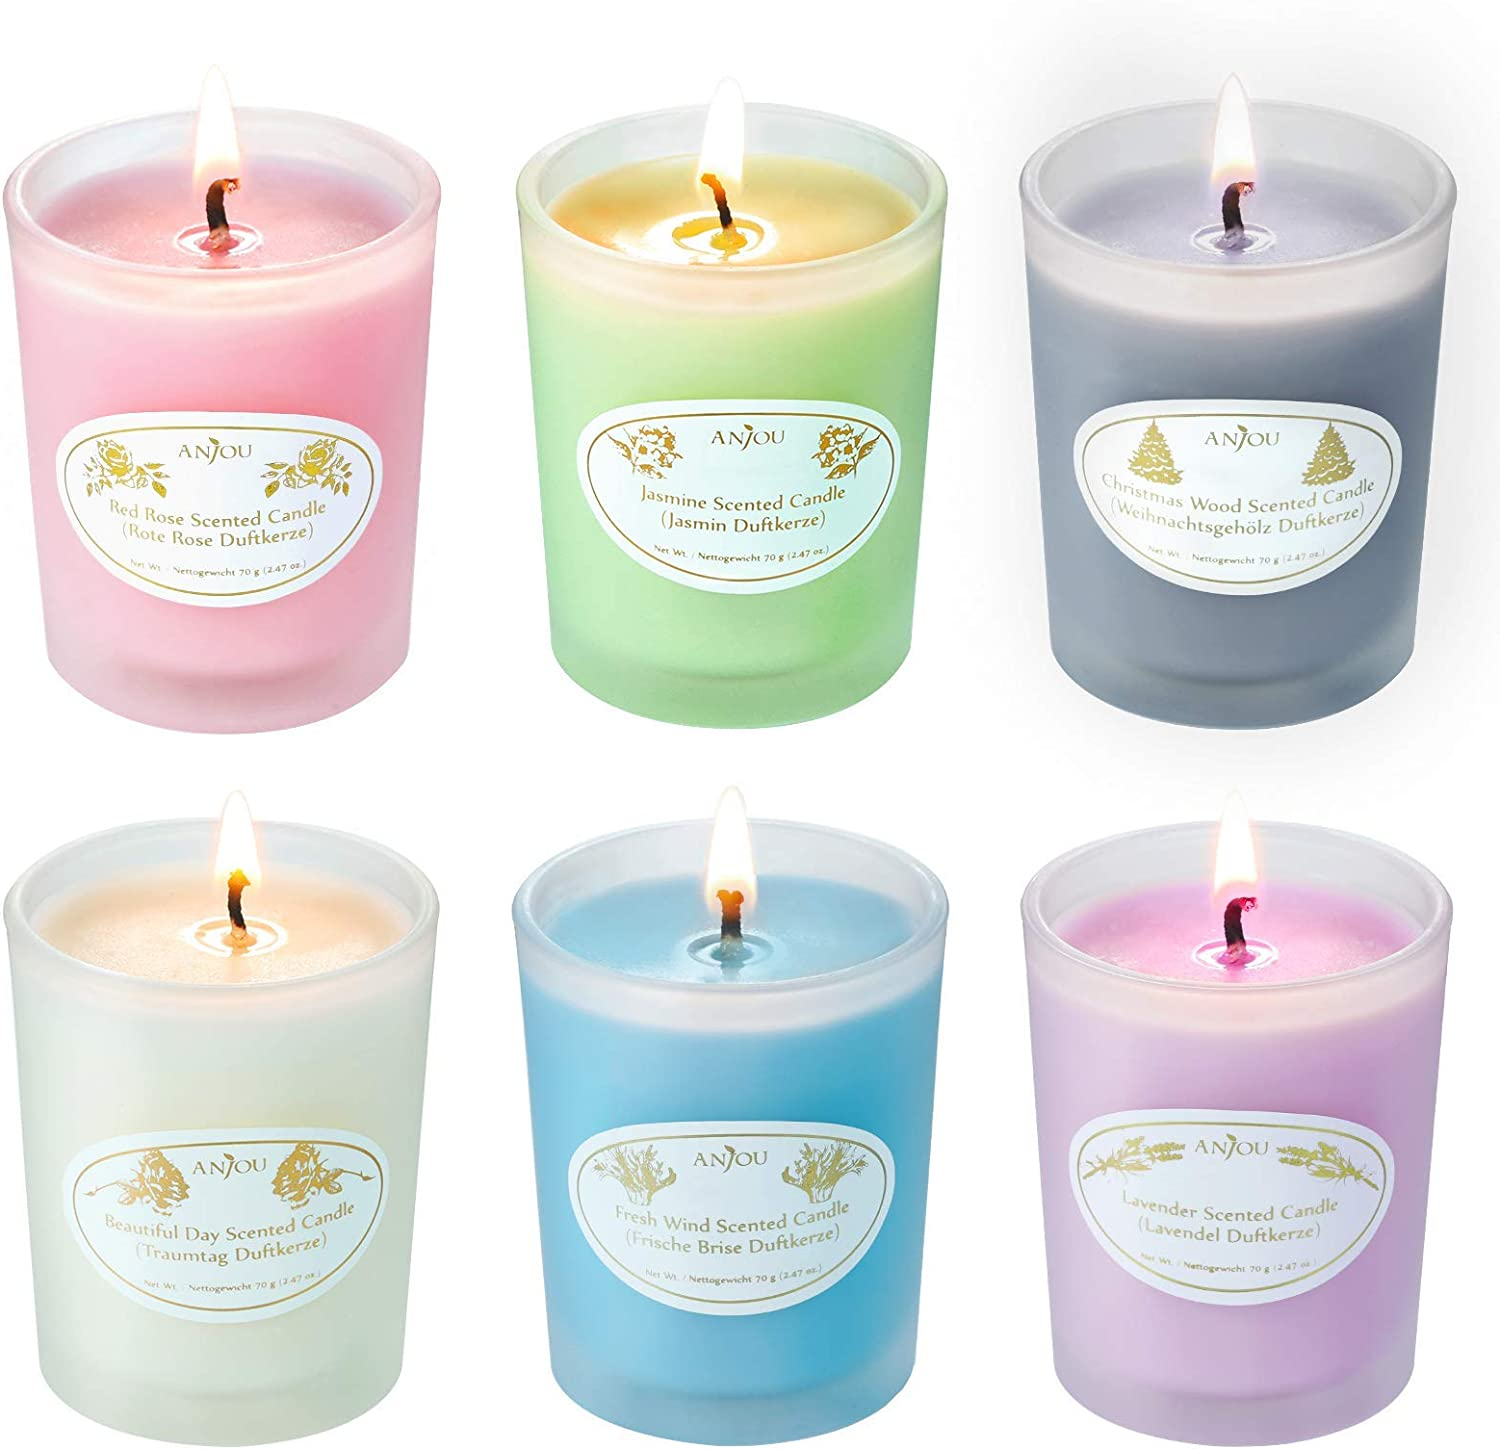 Anjou Scented Candles Gift Set, Christmas Candle (Pack 6) £9.99 w/code GII9CTD4 @ Amazon